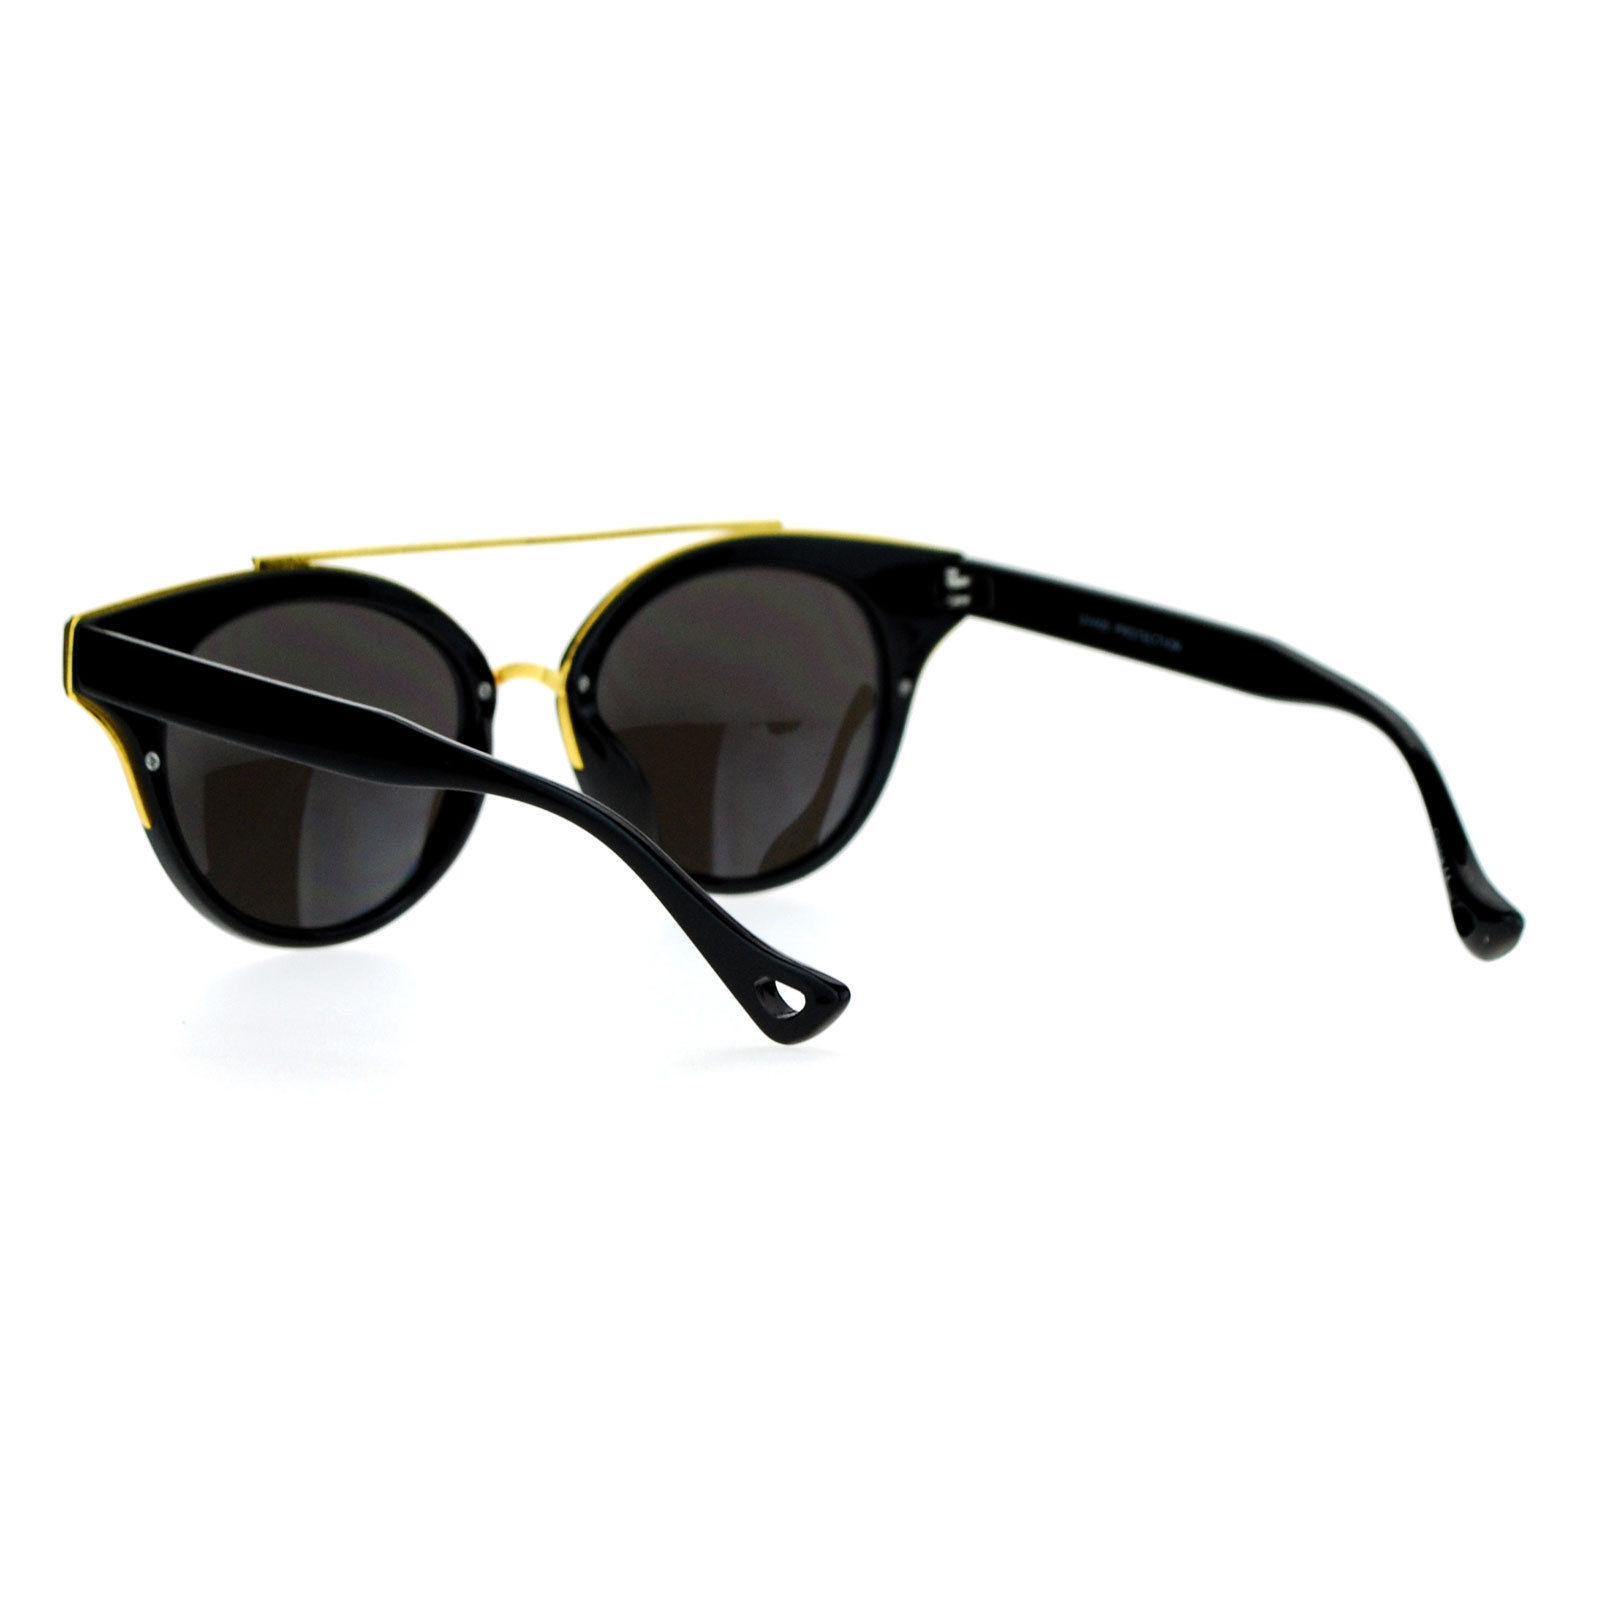 Womens Fashion Sunglasses Top Bar Round Cateye Butterfly Frame Mirror Lens